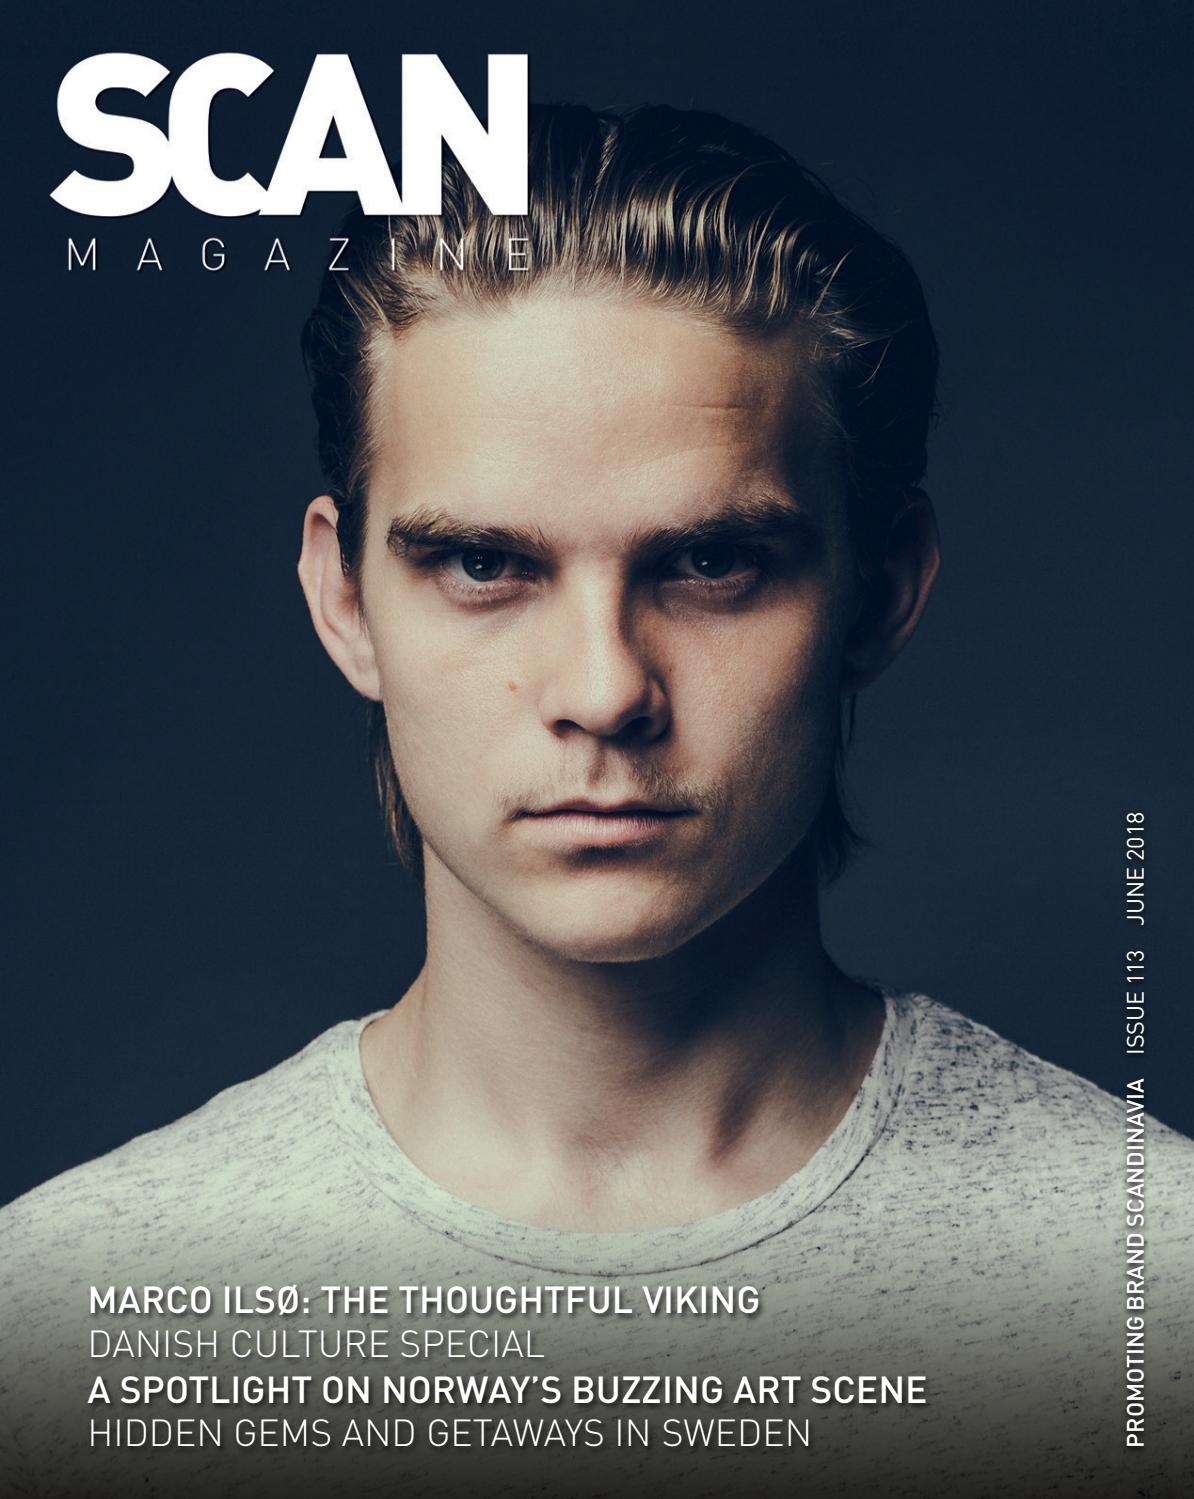 Scan Magazine Issue 113 June 2018 By Group Issuu Swan From Prison Break Diagram Origami Shrine